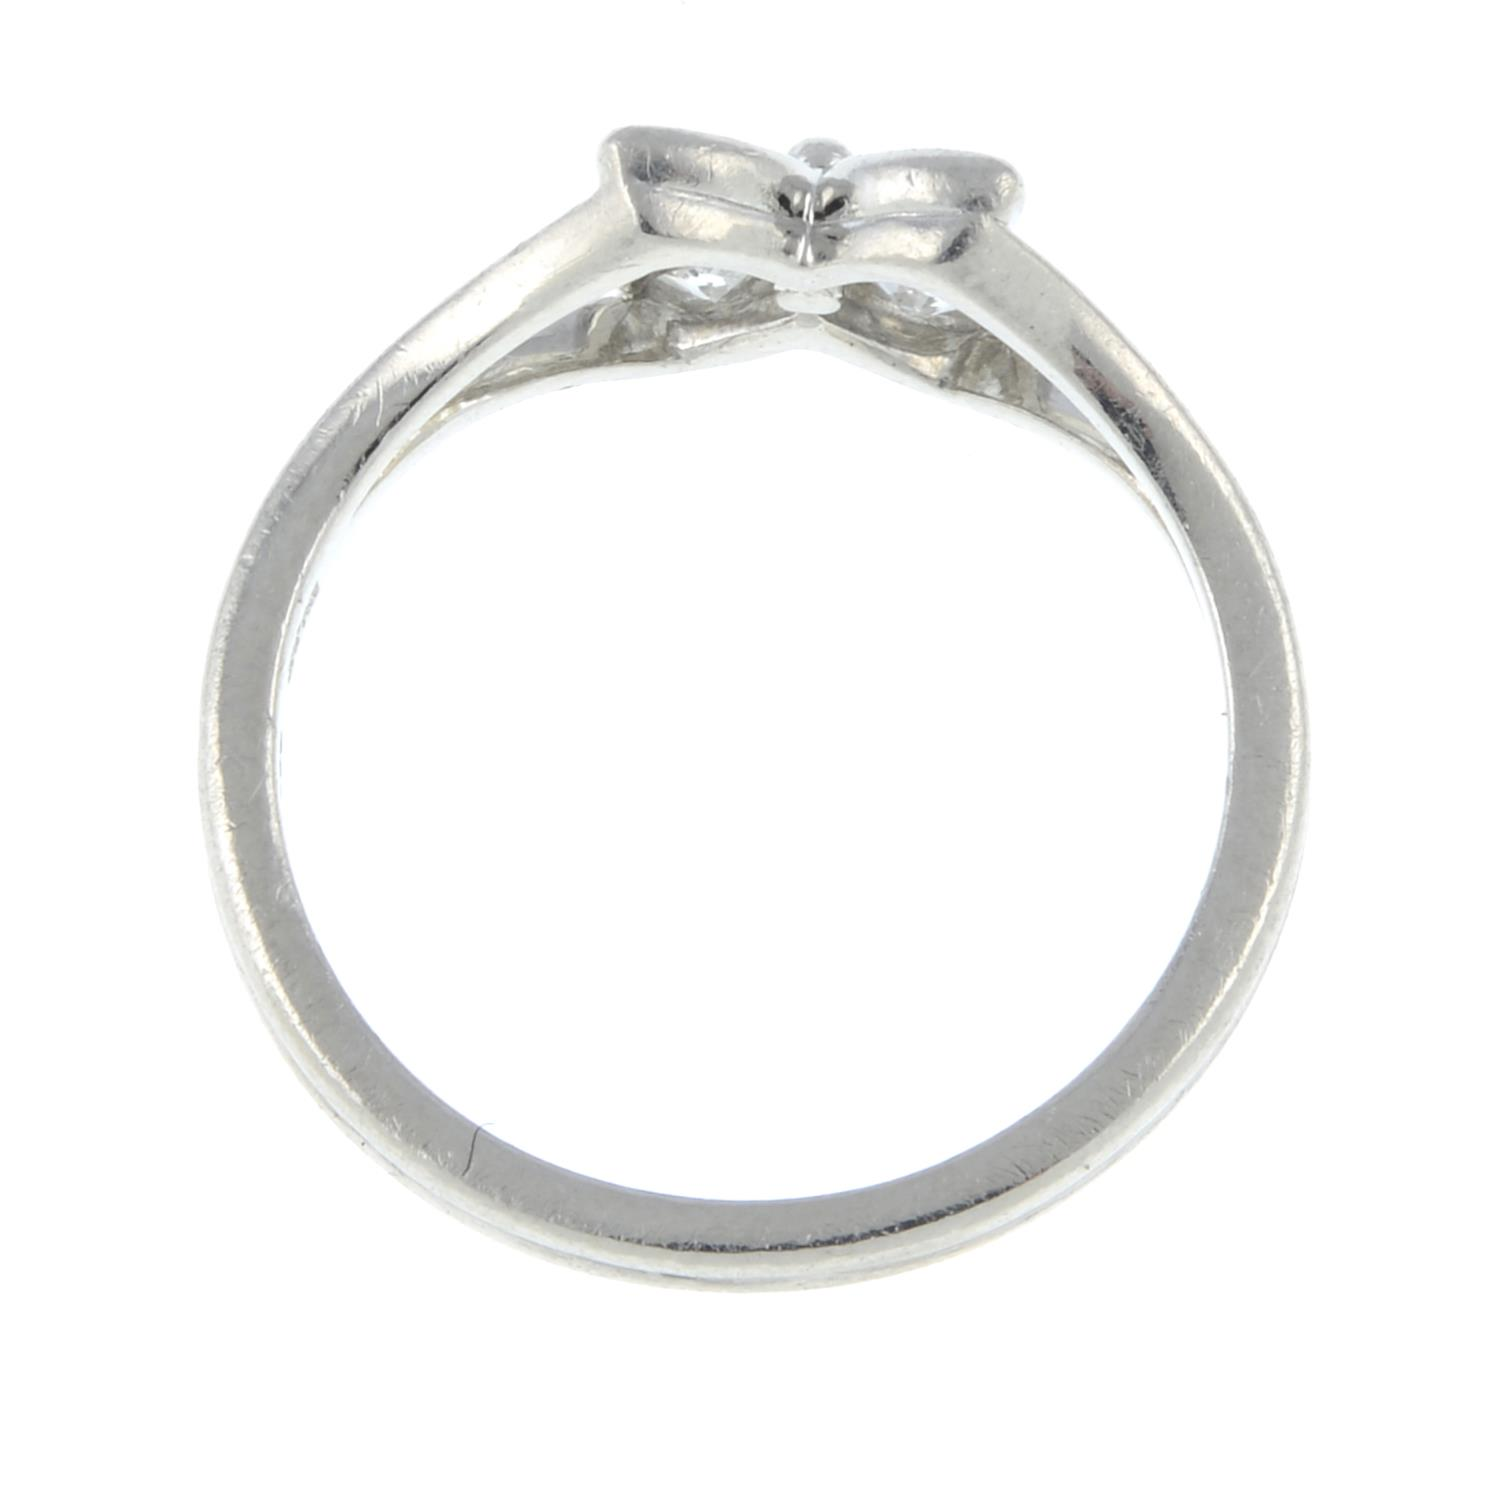 A diamond floral 'Victoria' ring, - Image 6 of 6